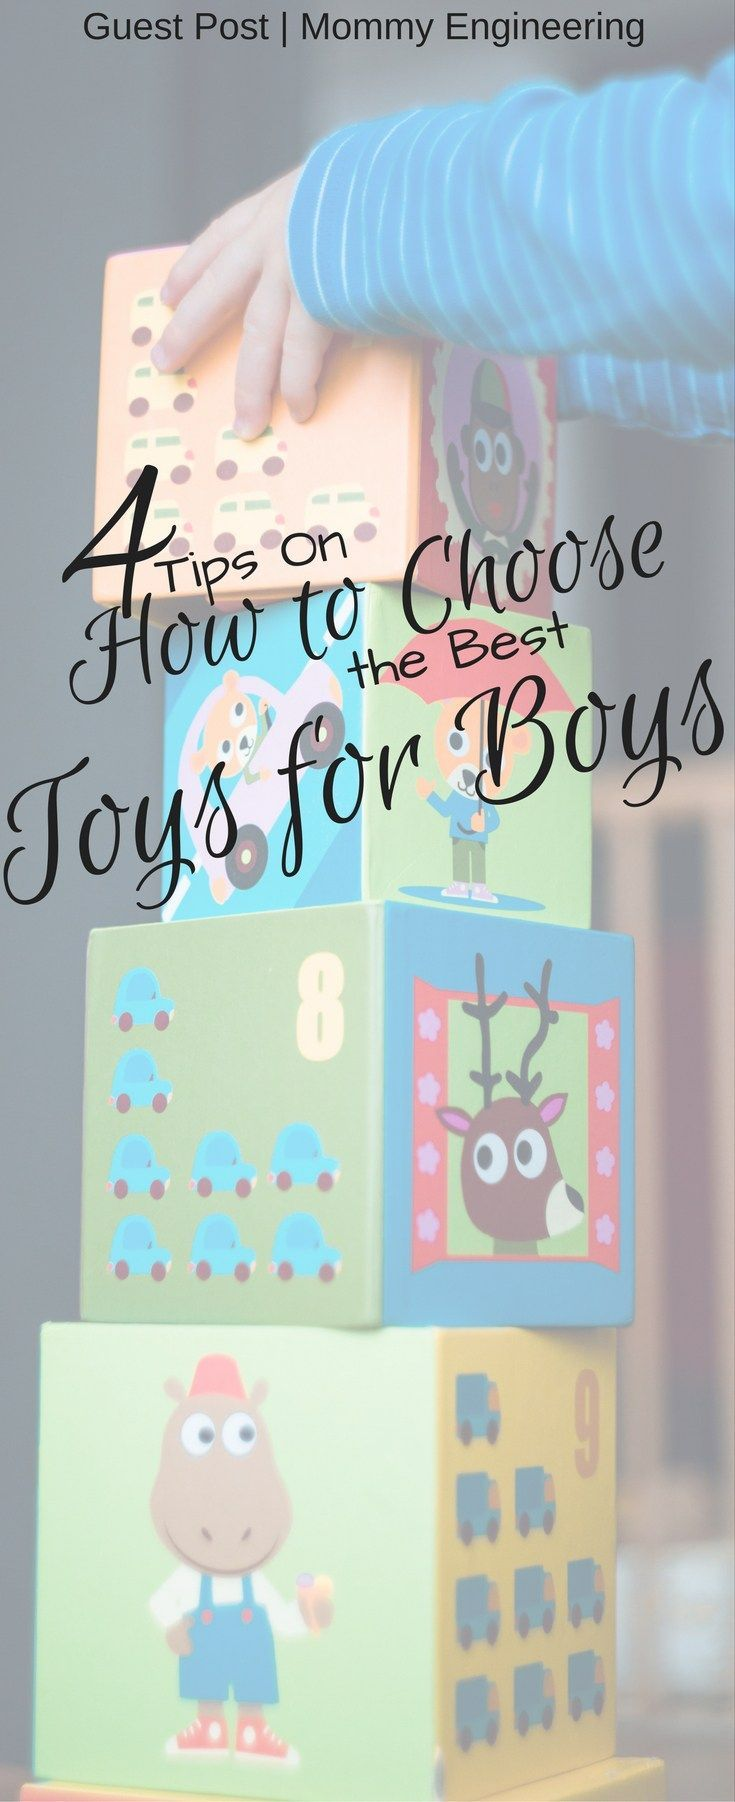 How to Choose the Best Toys for Boys   Best Toys for Boys | Toys for Best | Best Boys Toys | Educational Boys Toys | Top Picks for Boys Toys | Favorite Boy Toys